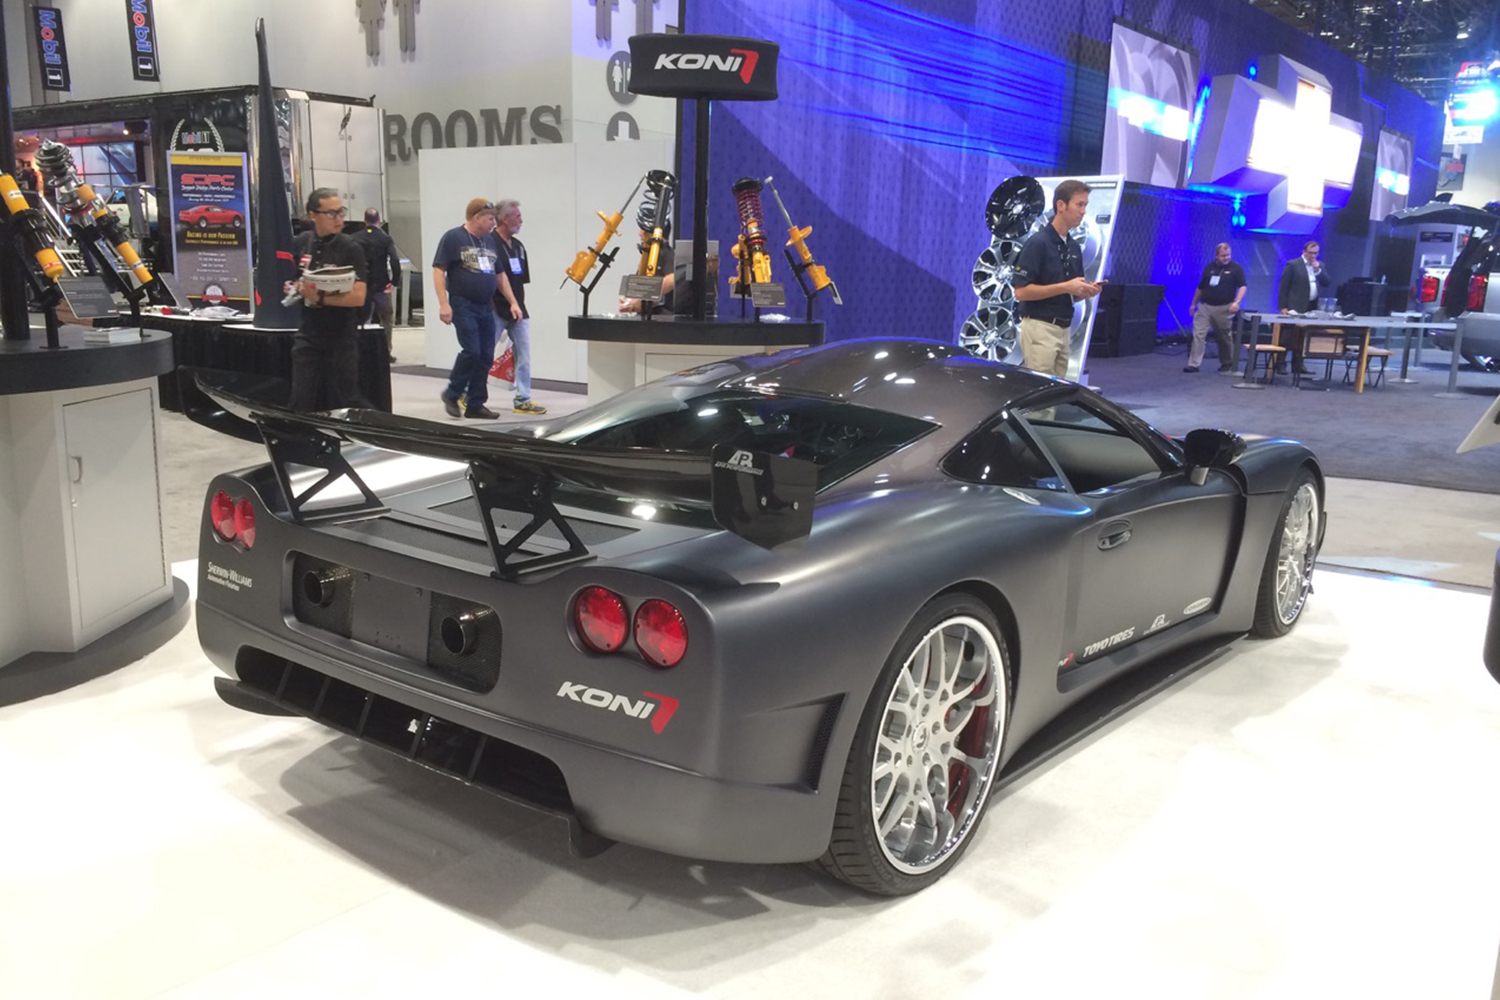 A Factory Five Racing GTM supercar based on a Corvette at the KONI Shocks booth at SEMA in 2014